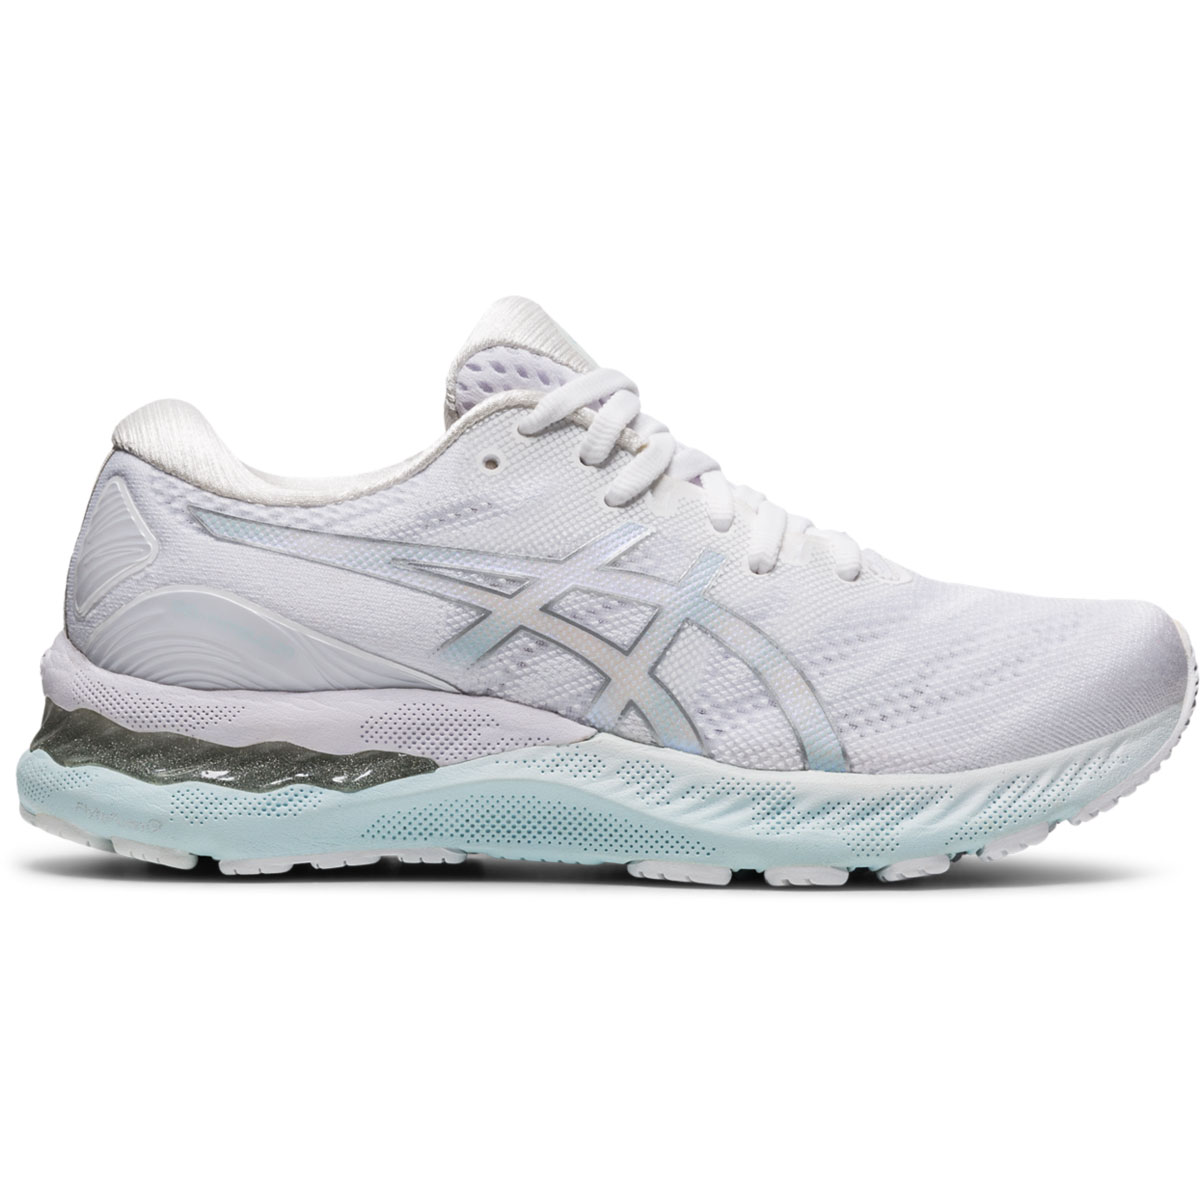 Women's Asics Gel-Nimbus 23 Running Shoe - Color: White/Pure Silver - Size: 5 - Width: Regular, White/Pure Silver, large, image 1